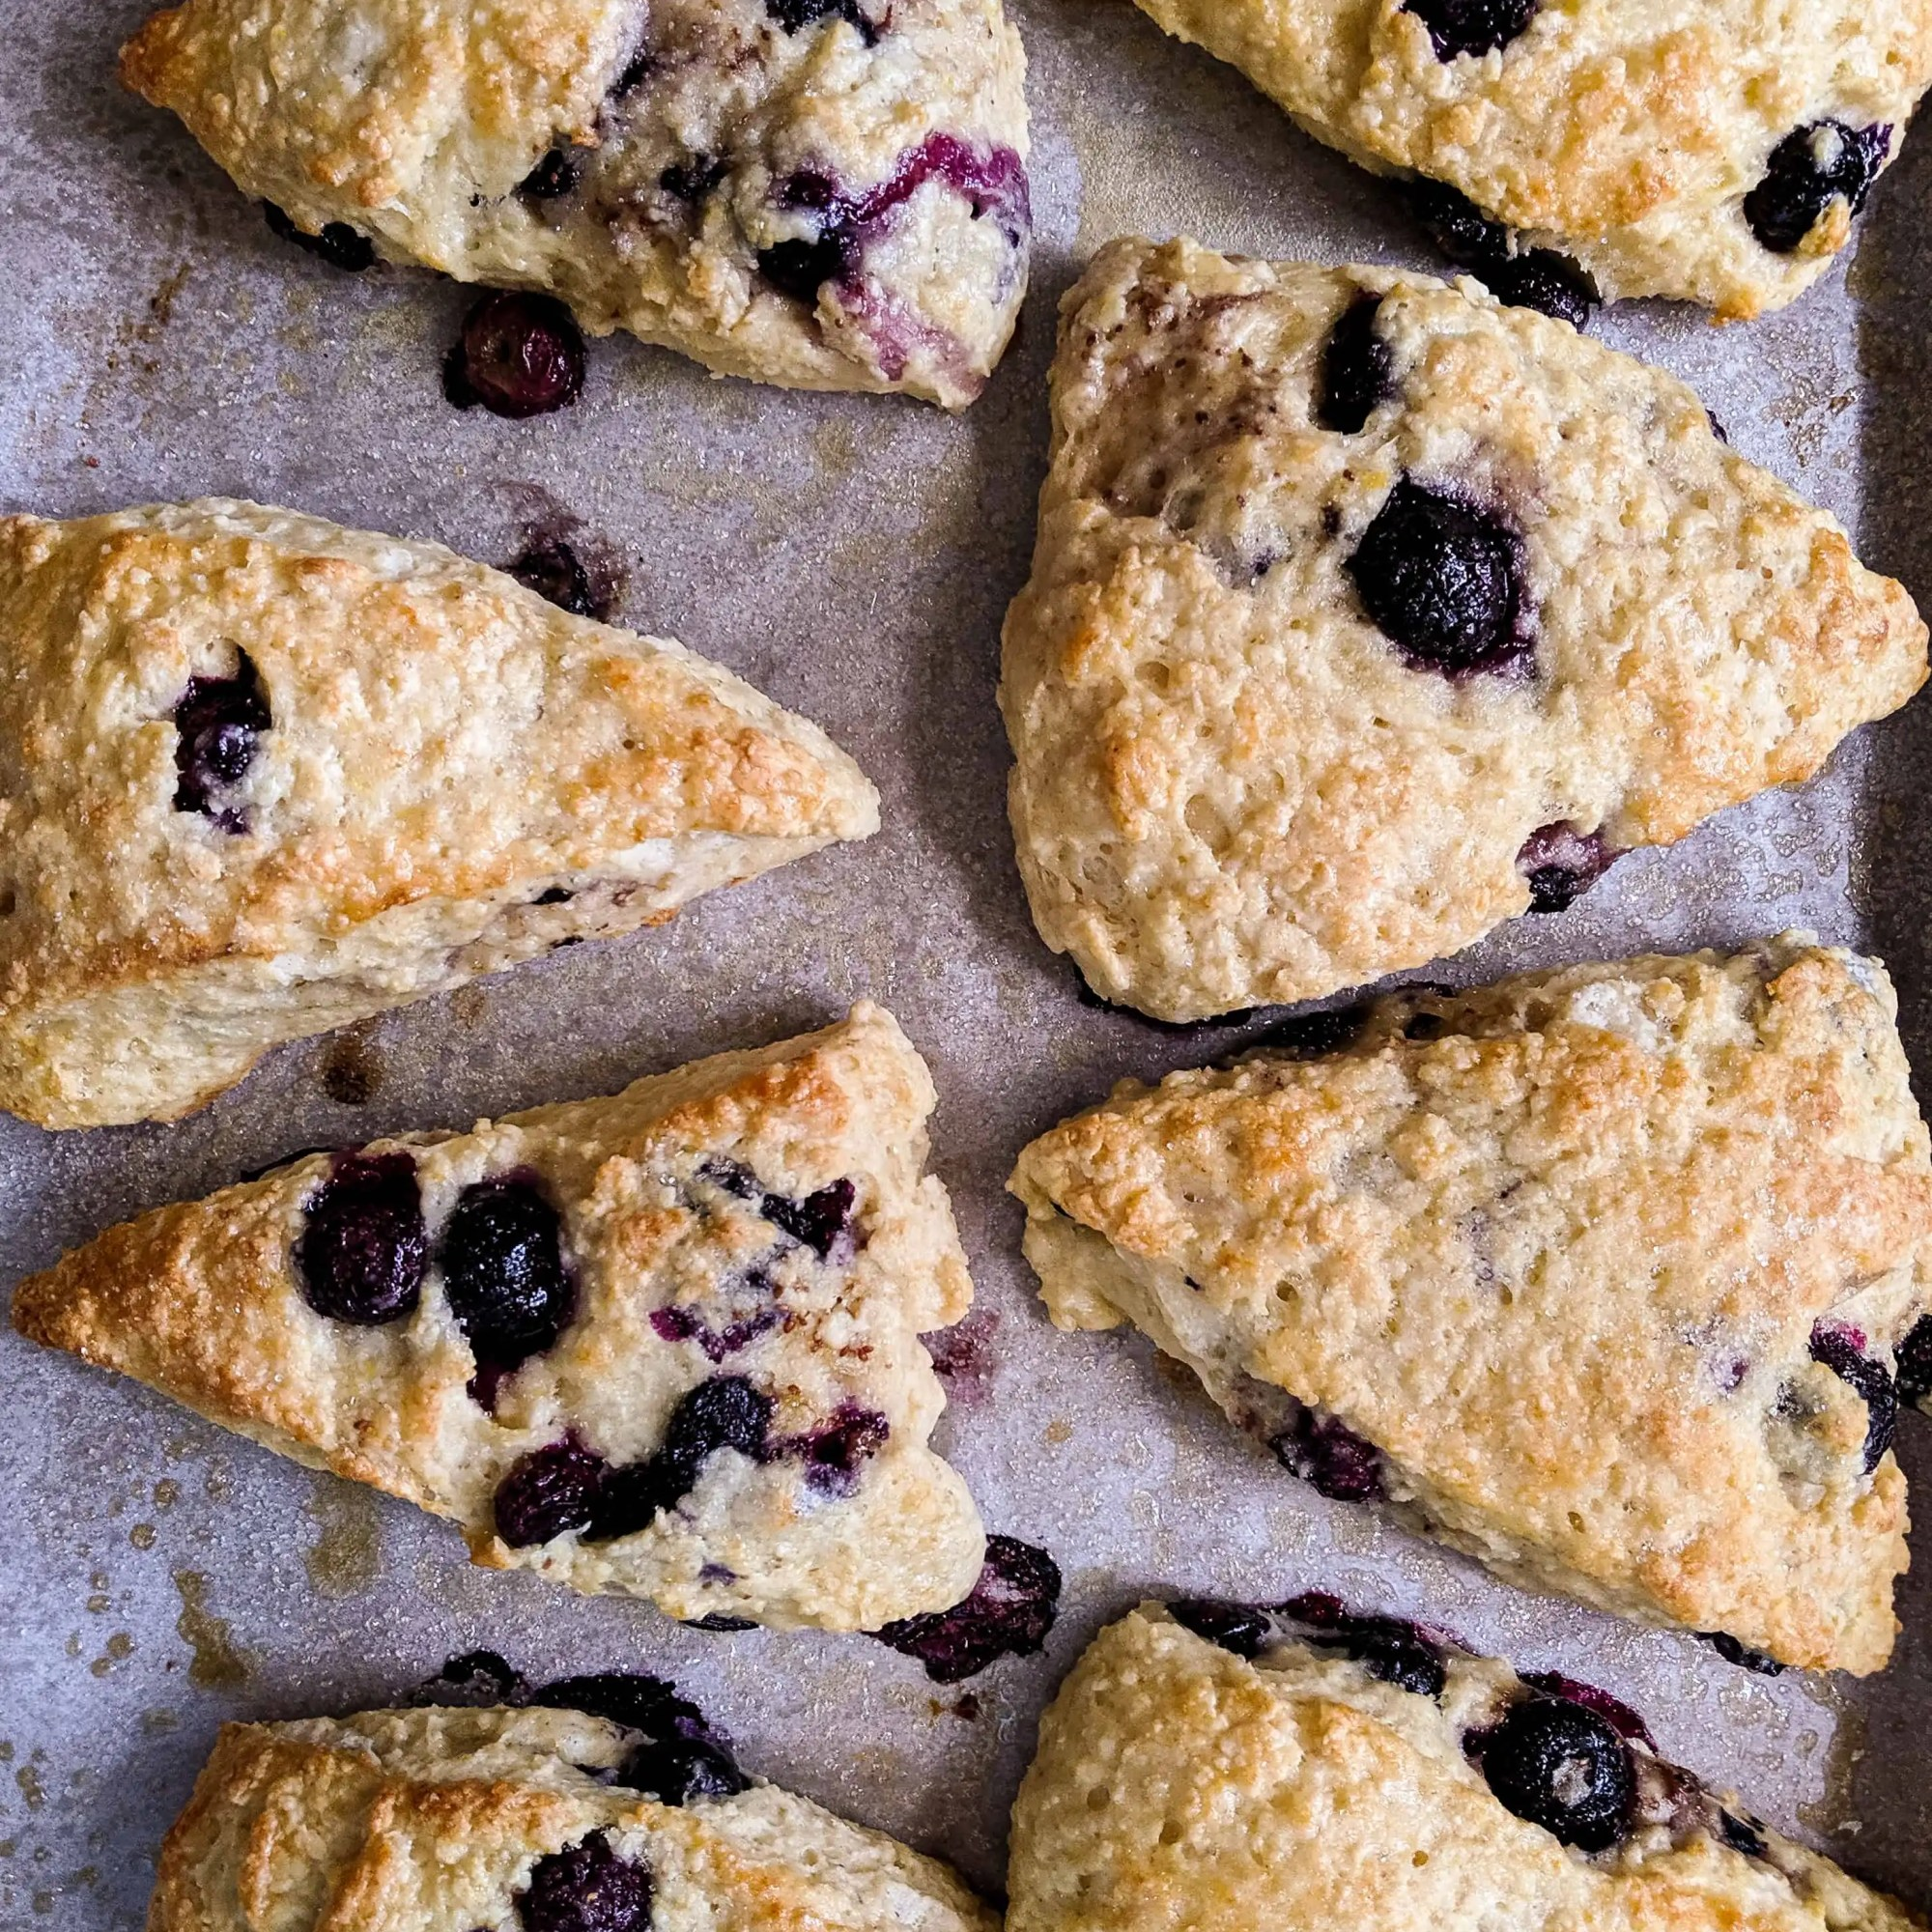 Dwardcooks Blueberry Scones - Baked